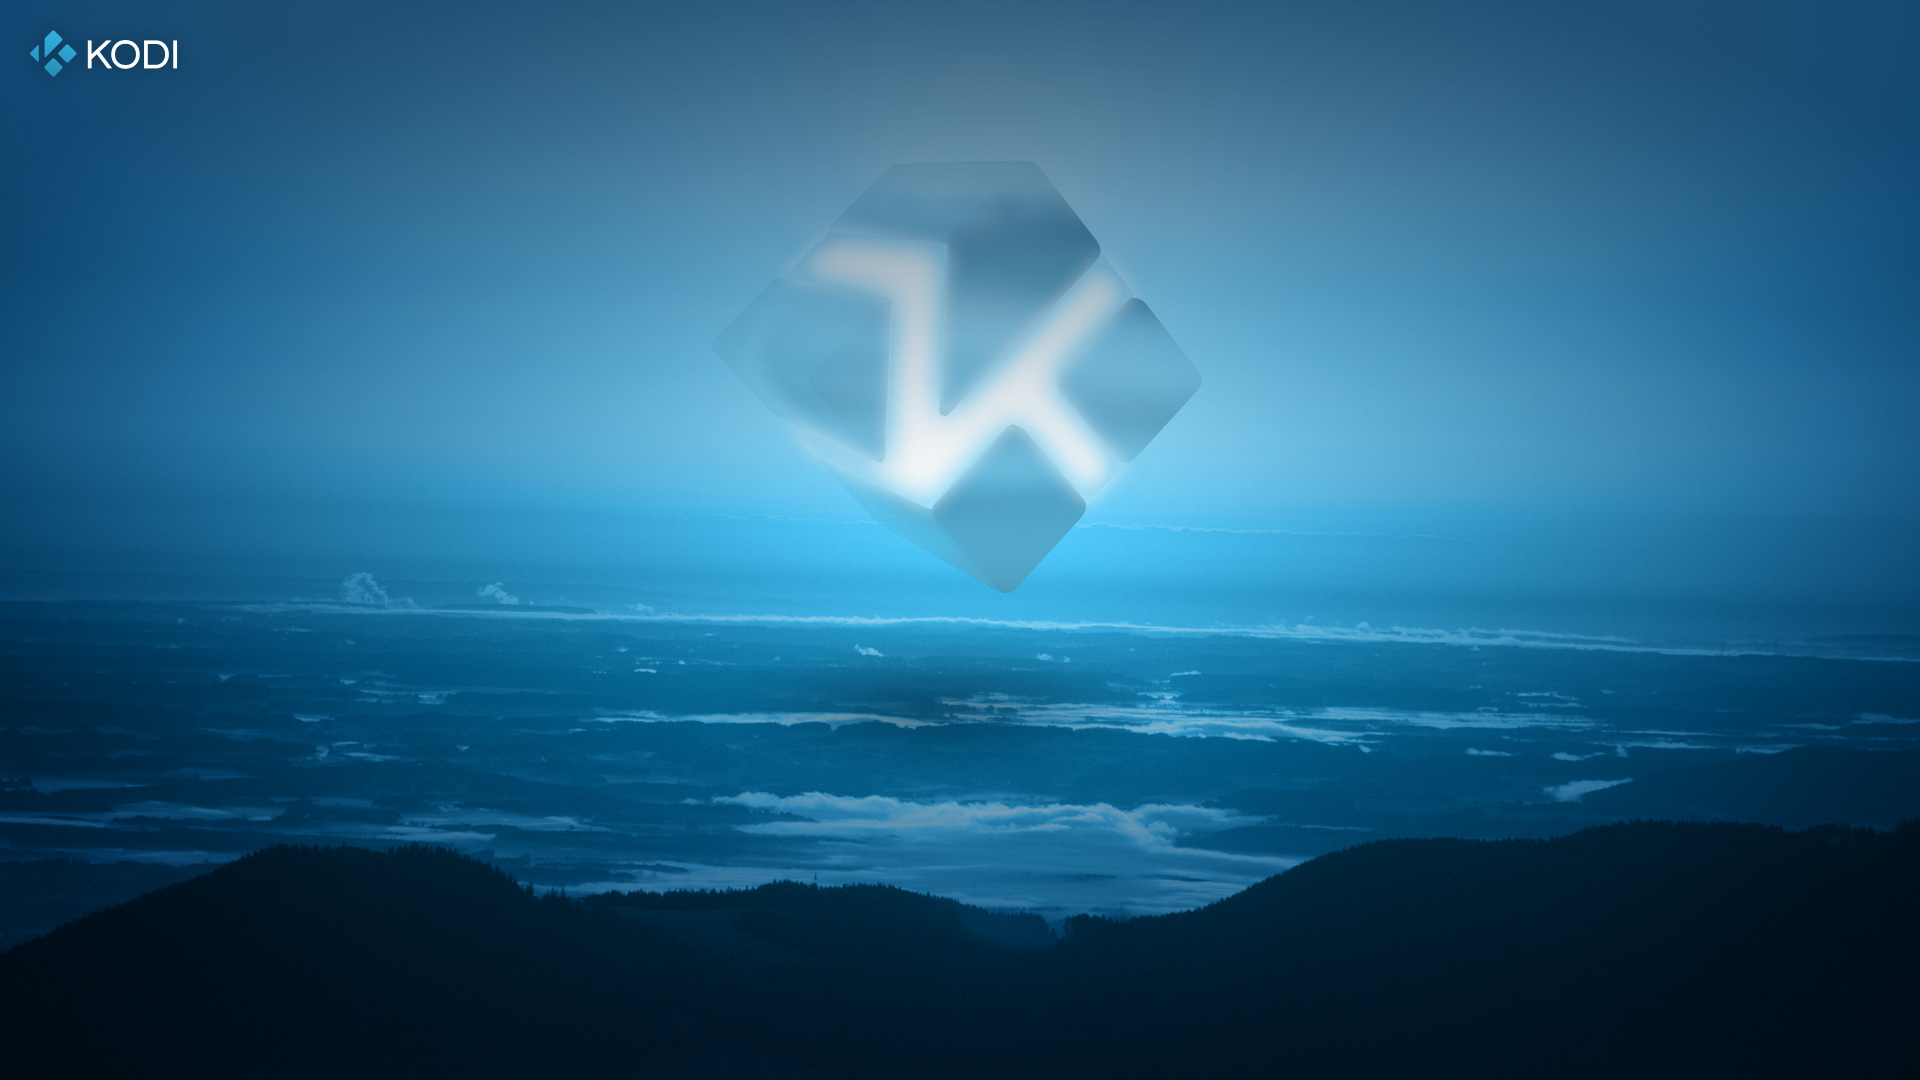 Kodi fanart and wallpaper - Kodi Fanart And Wallpaper 7